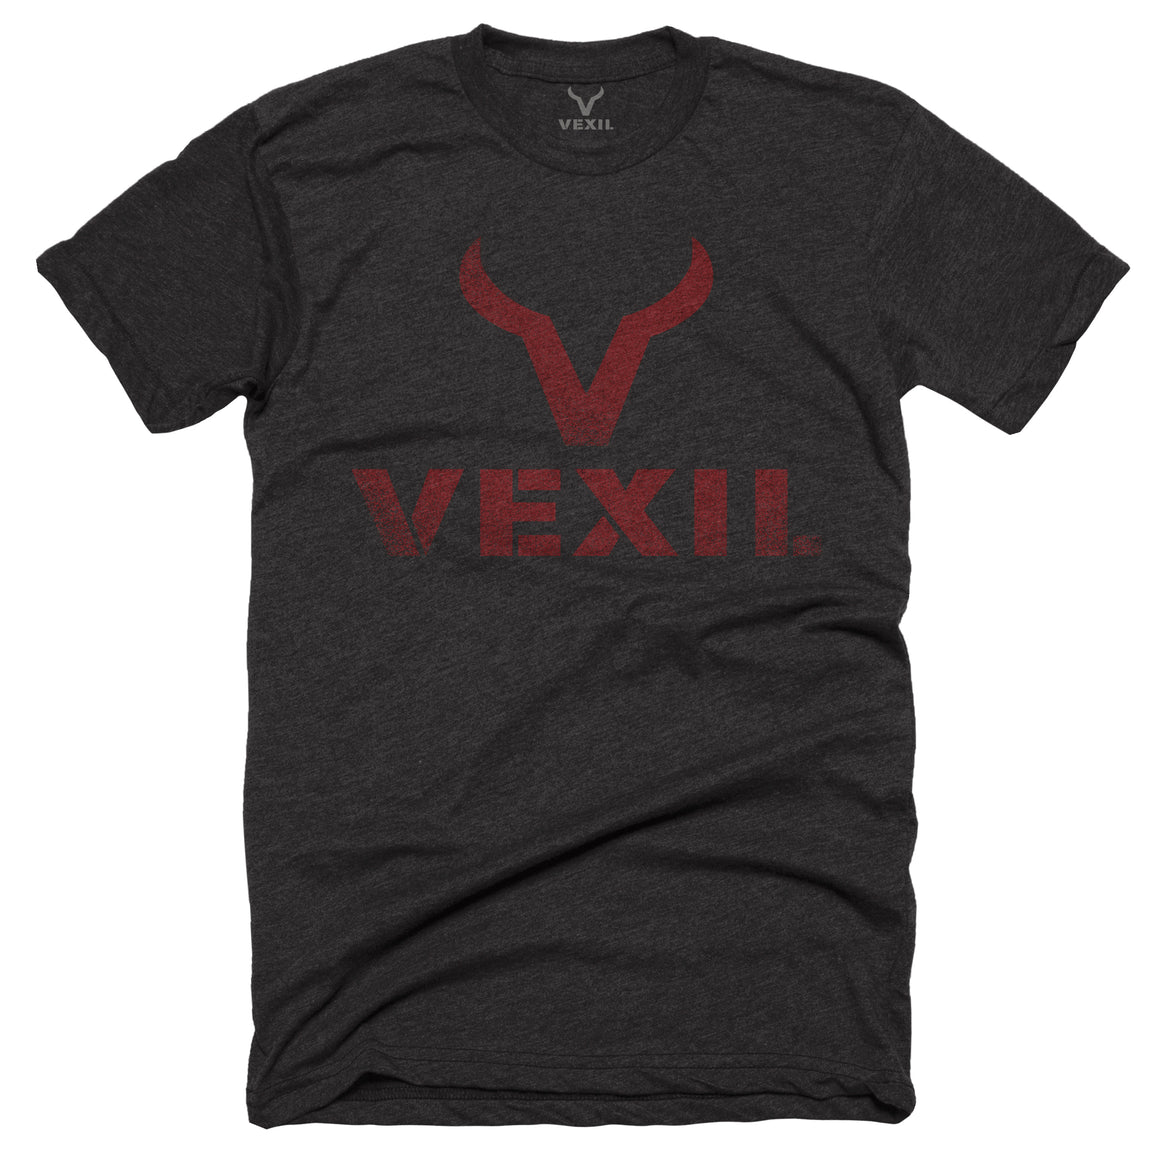 Vexil Brand - Distressed Logo - Charcoal